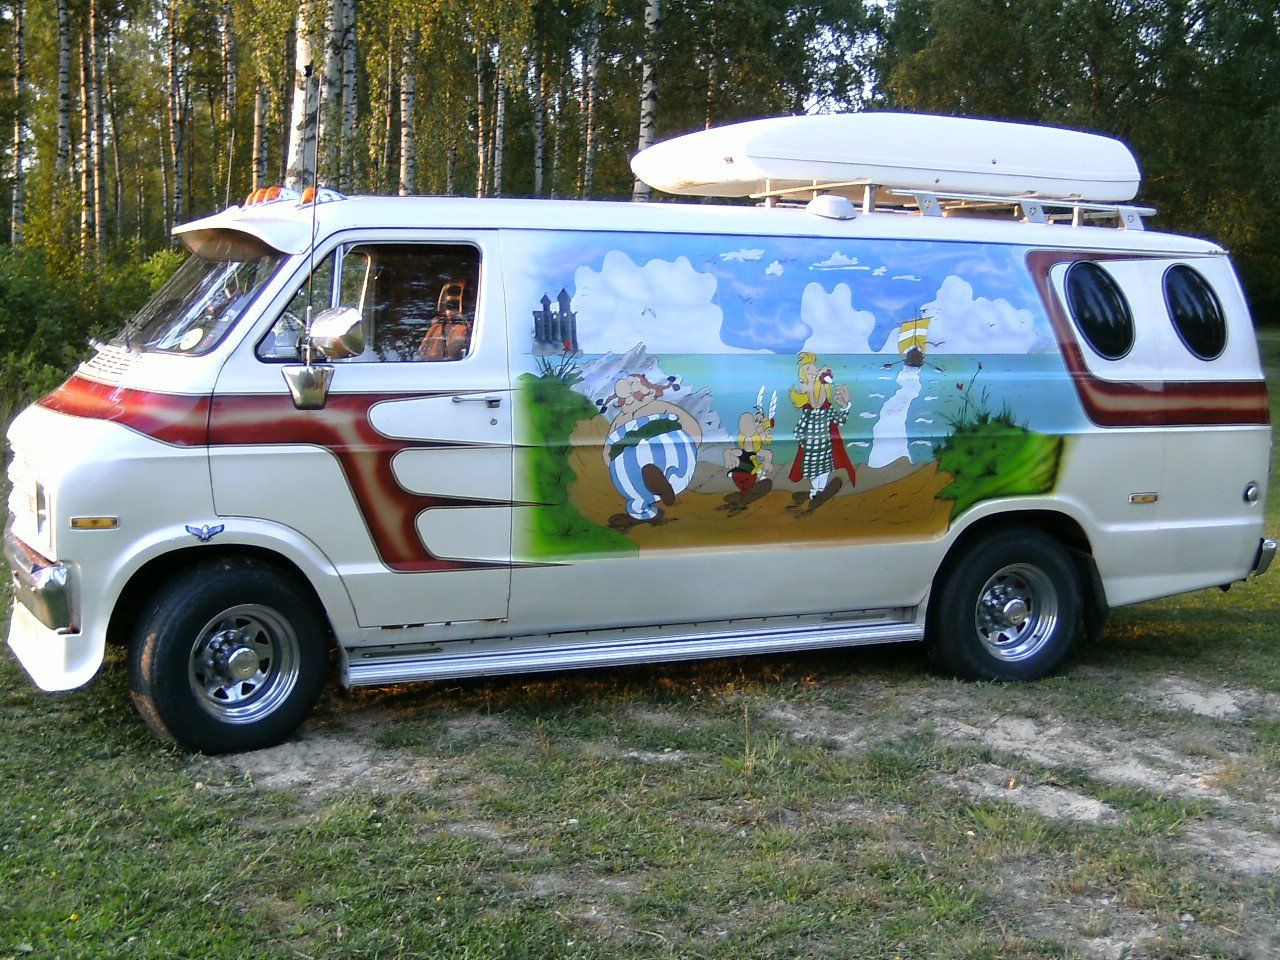 1963 ford econoline custom van as used in the cartoon films and shows vehicles pinterest custom vans ford and movie cars